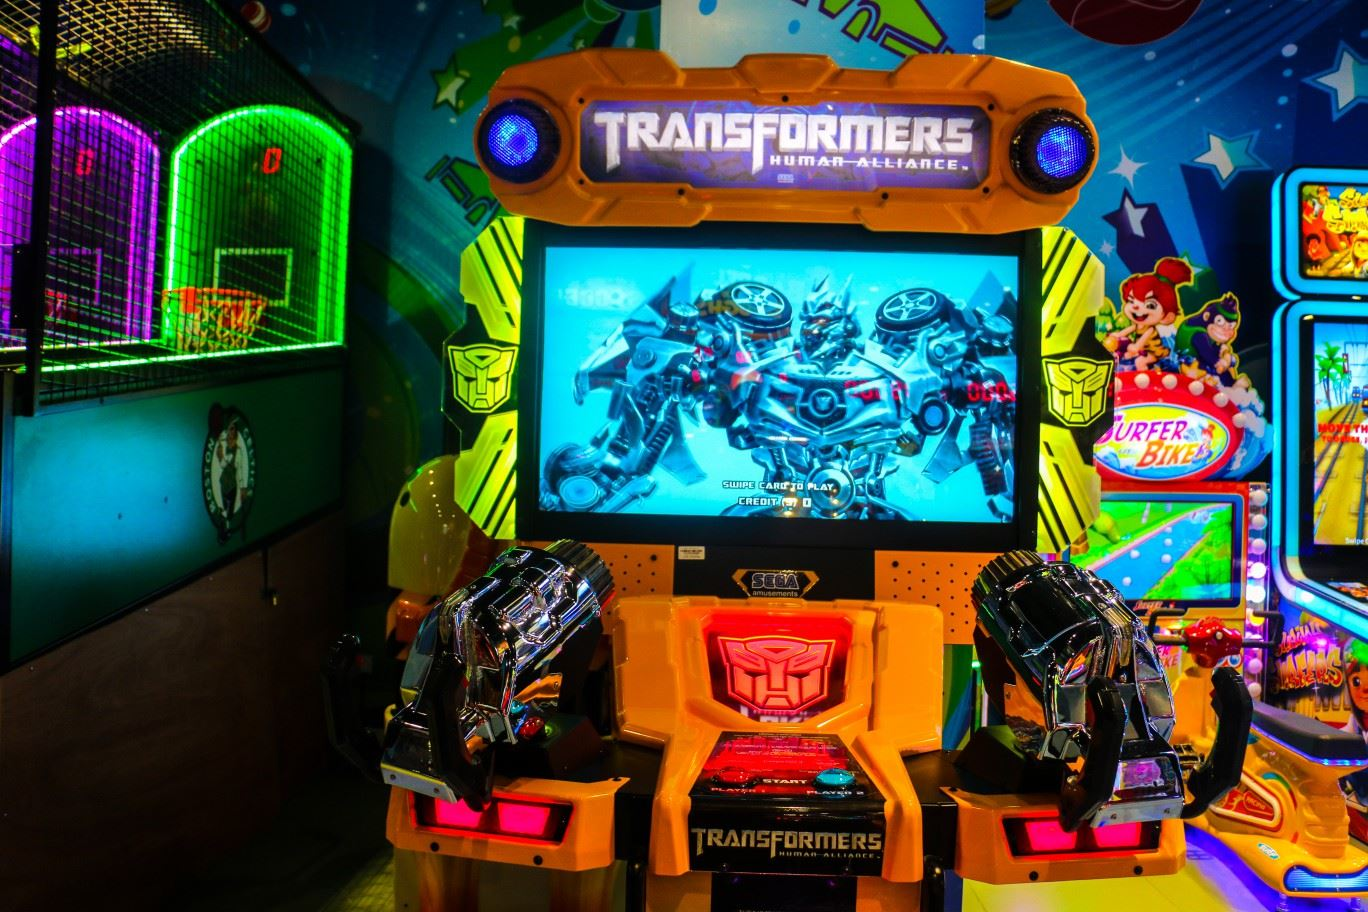 Transformers game at Magic Planet Mall of the Emirates